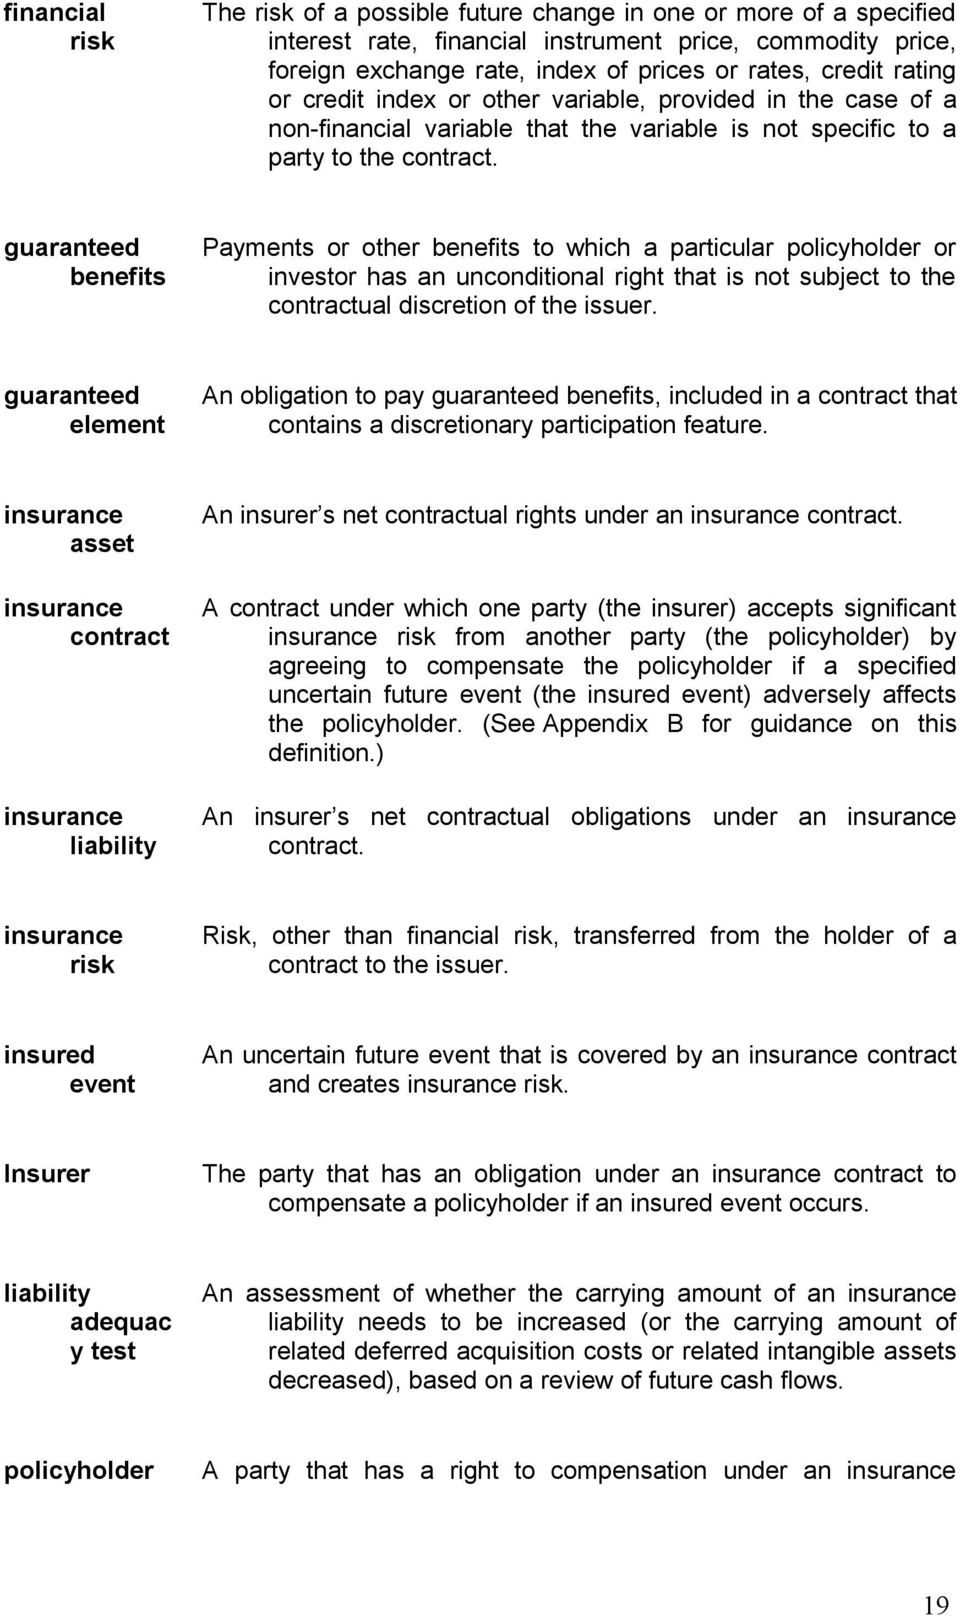 guaranteed benefits Payments or other benefits to which a particular policyholder or investor has an unconditional right that is not subject to the contractual discretion of the issuer.